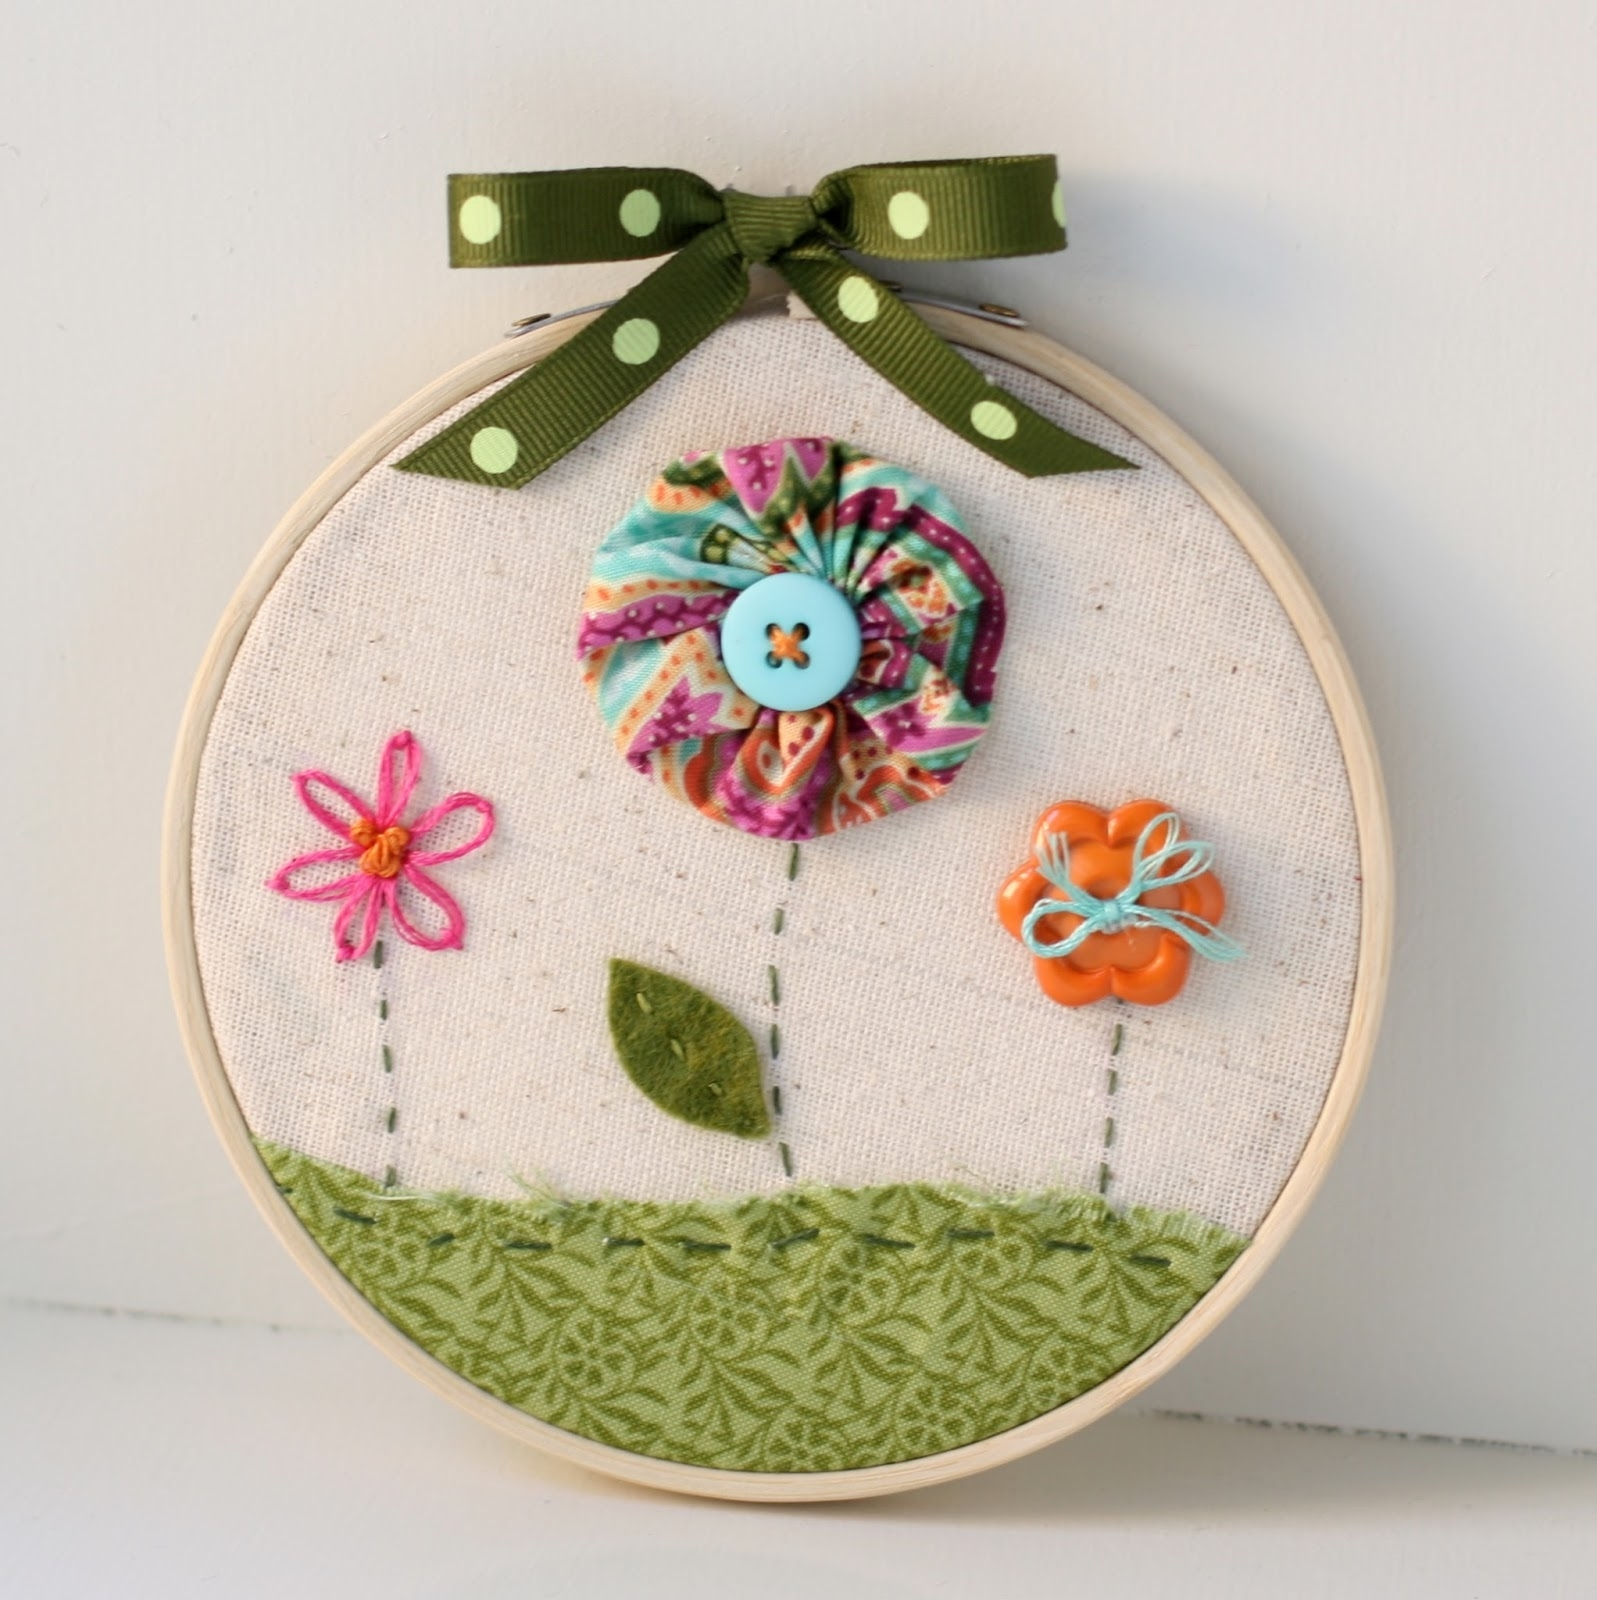 Bunches And Bits: Hoop Art Wall Hanging Inside Most Current Fabric Circle Wall Art (View 3 of 15)